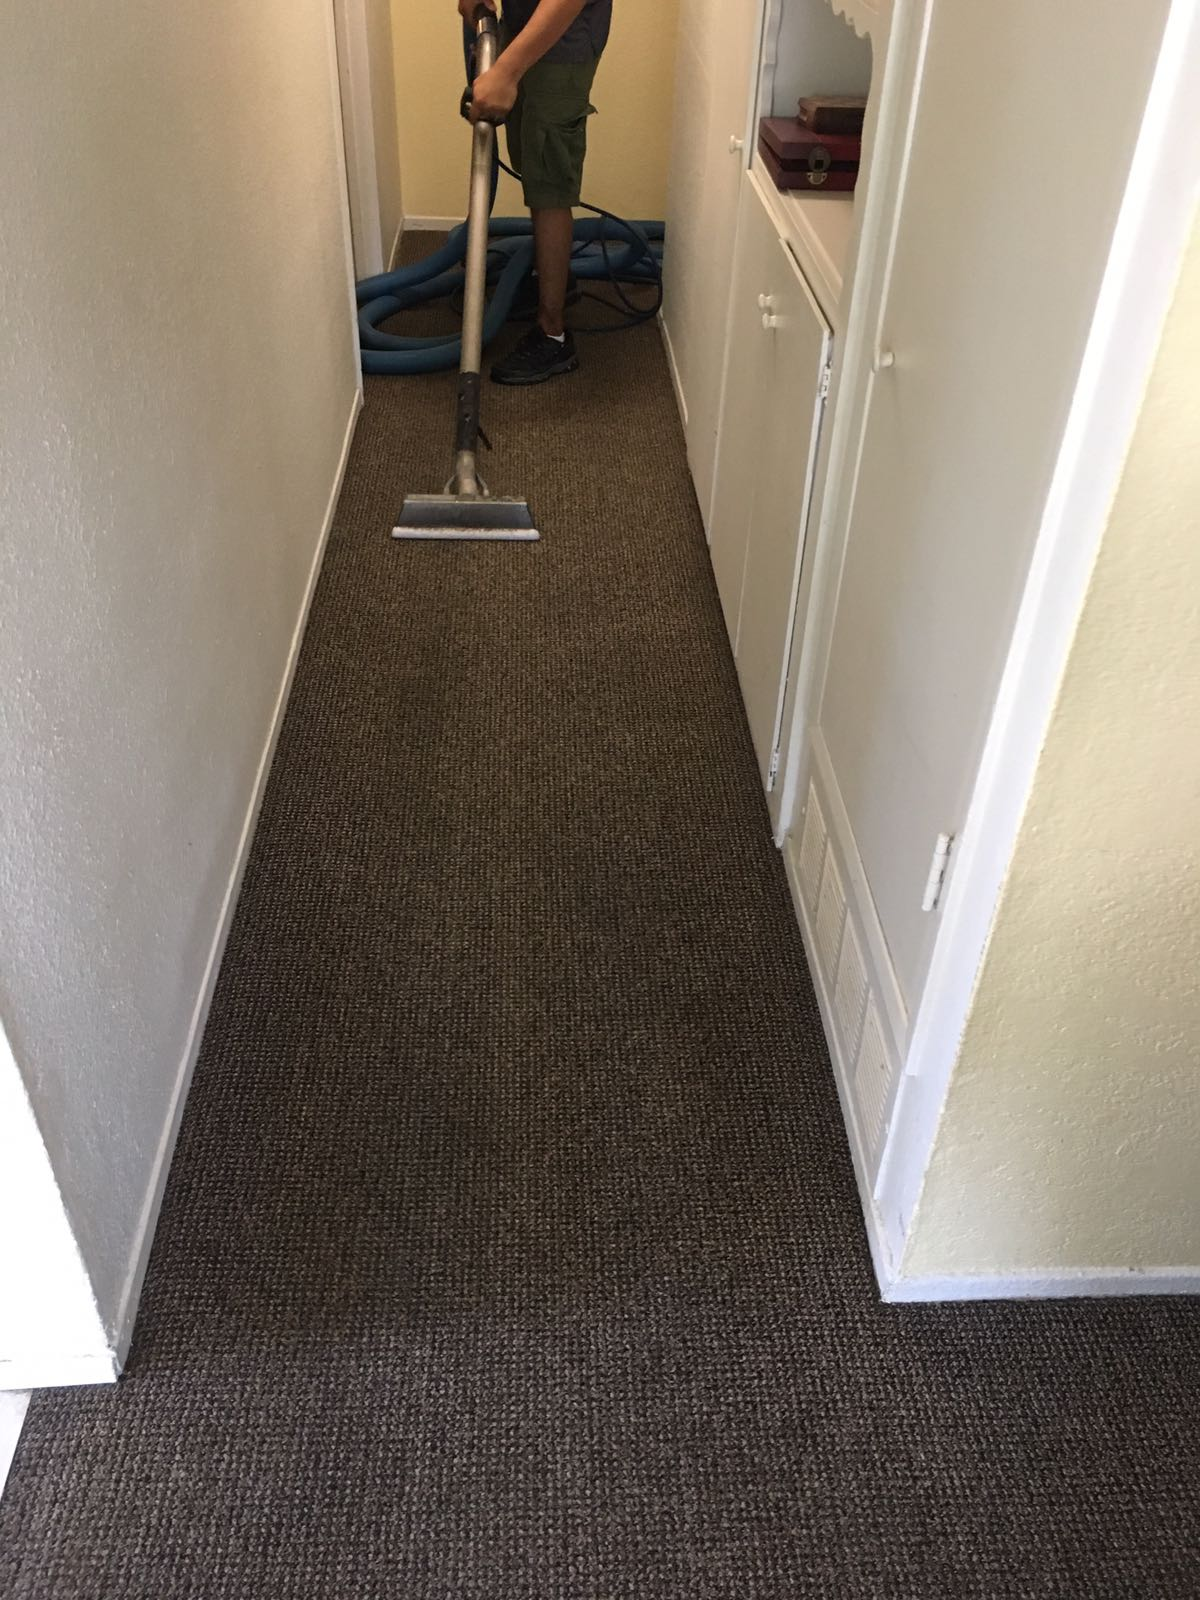 Carpet cleaning santa monica services socal carpet cleaning for Flooring santa monica